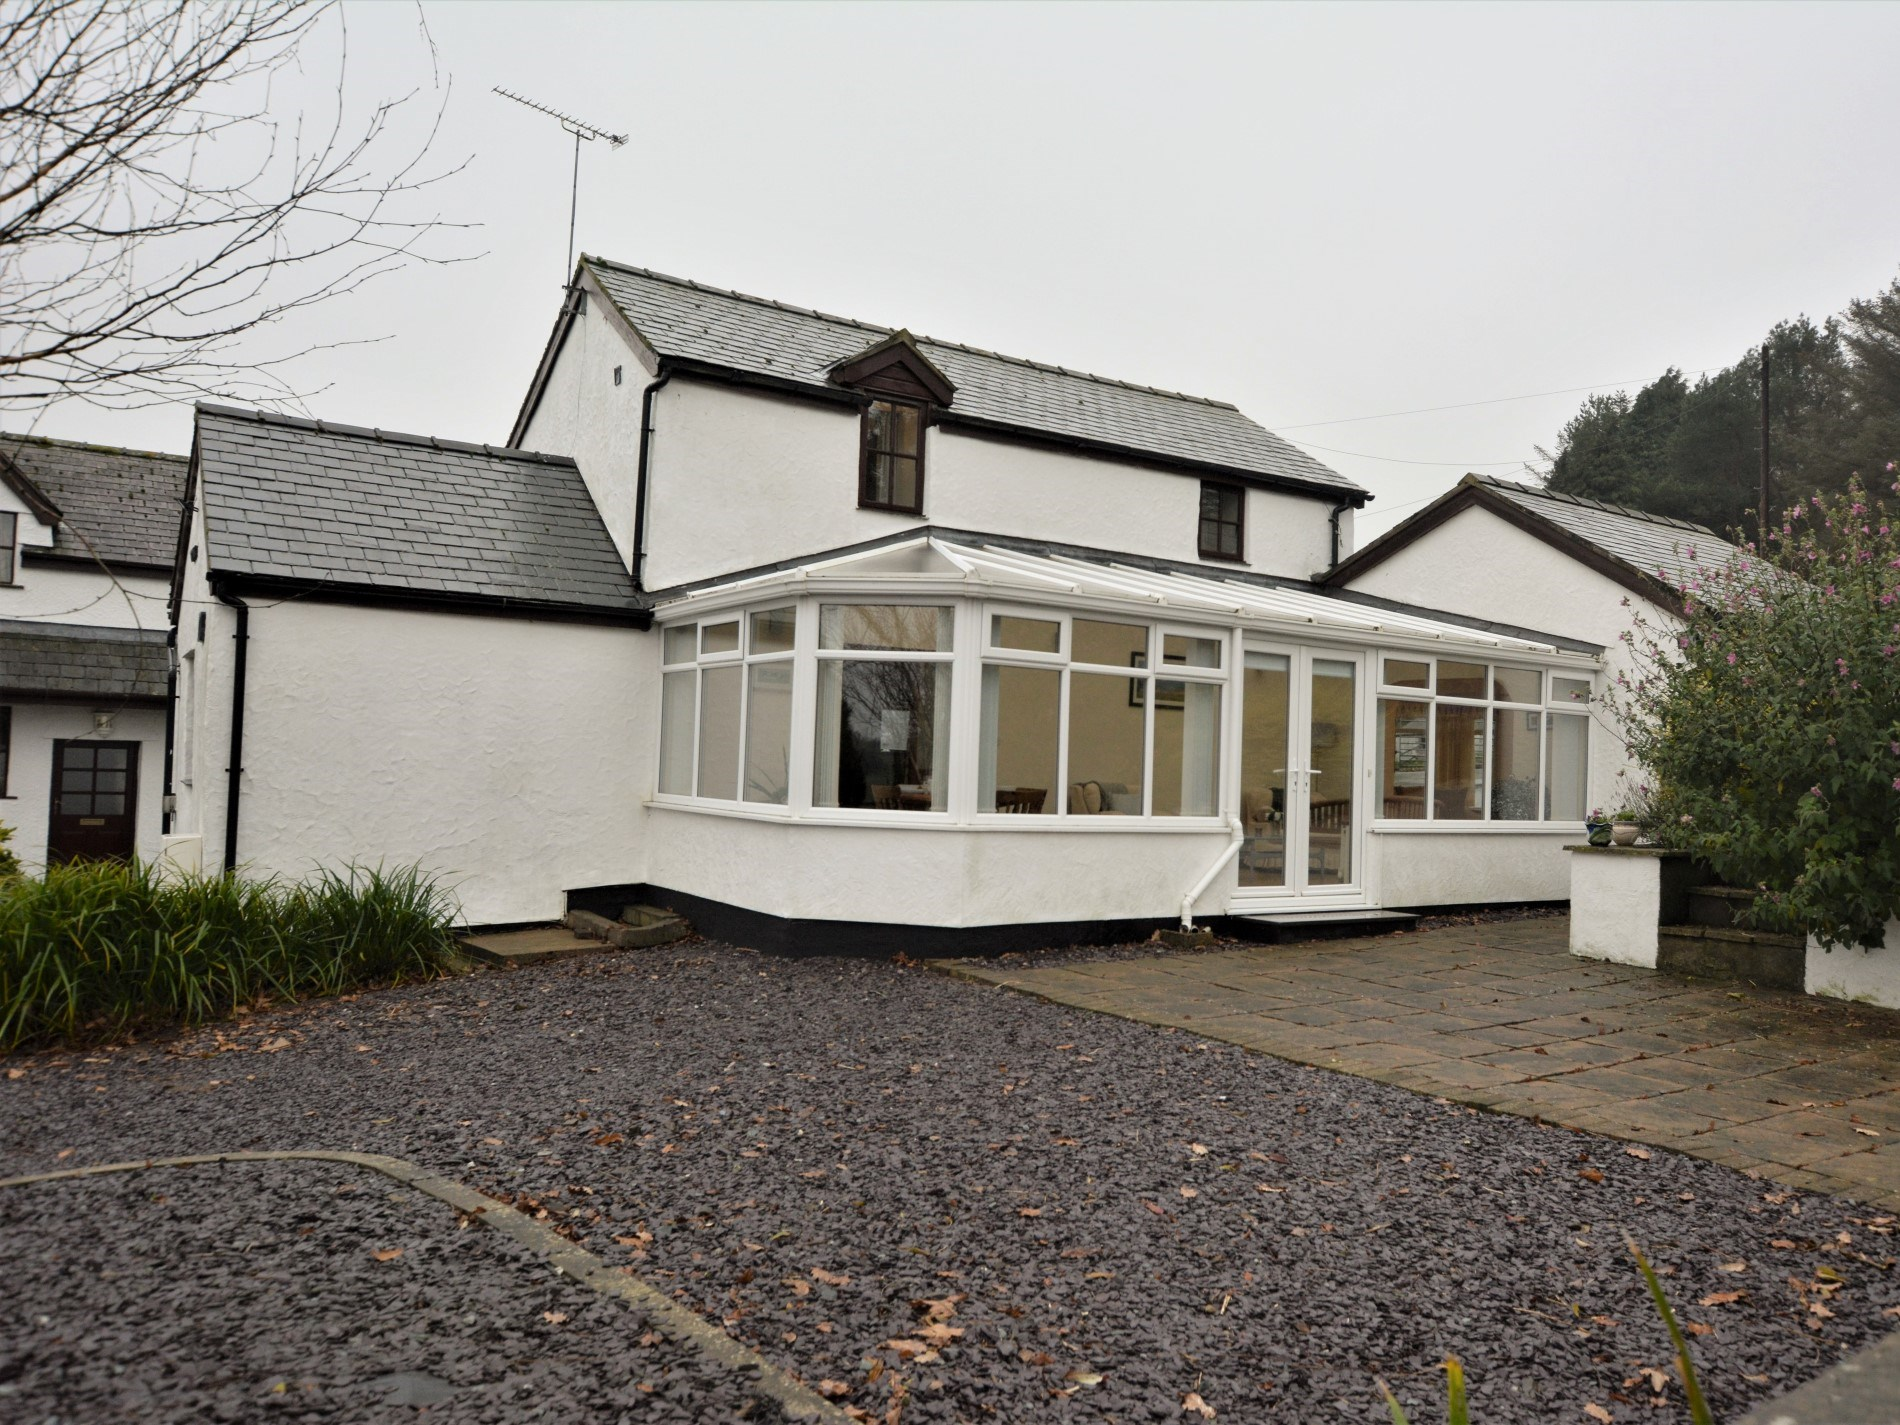 1 Bedroom Cottage in Colwyn Bay, Snowdonia and North Wales